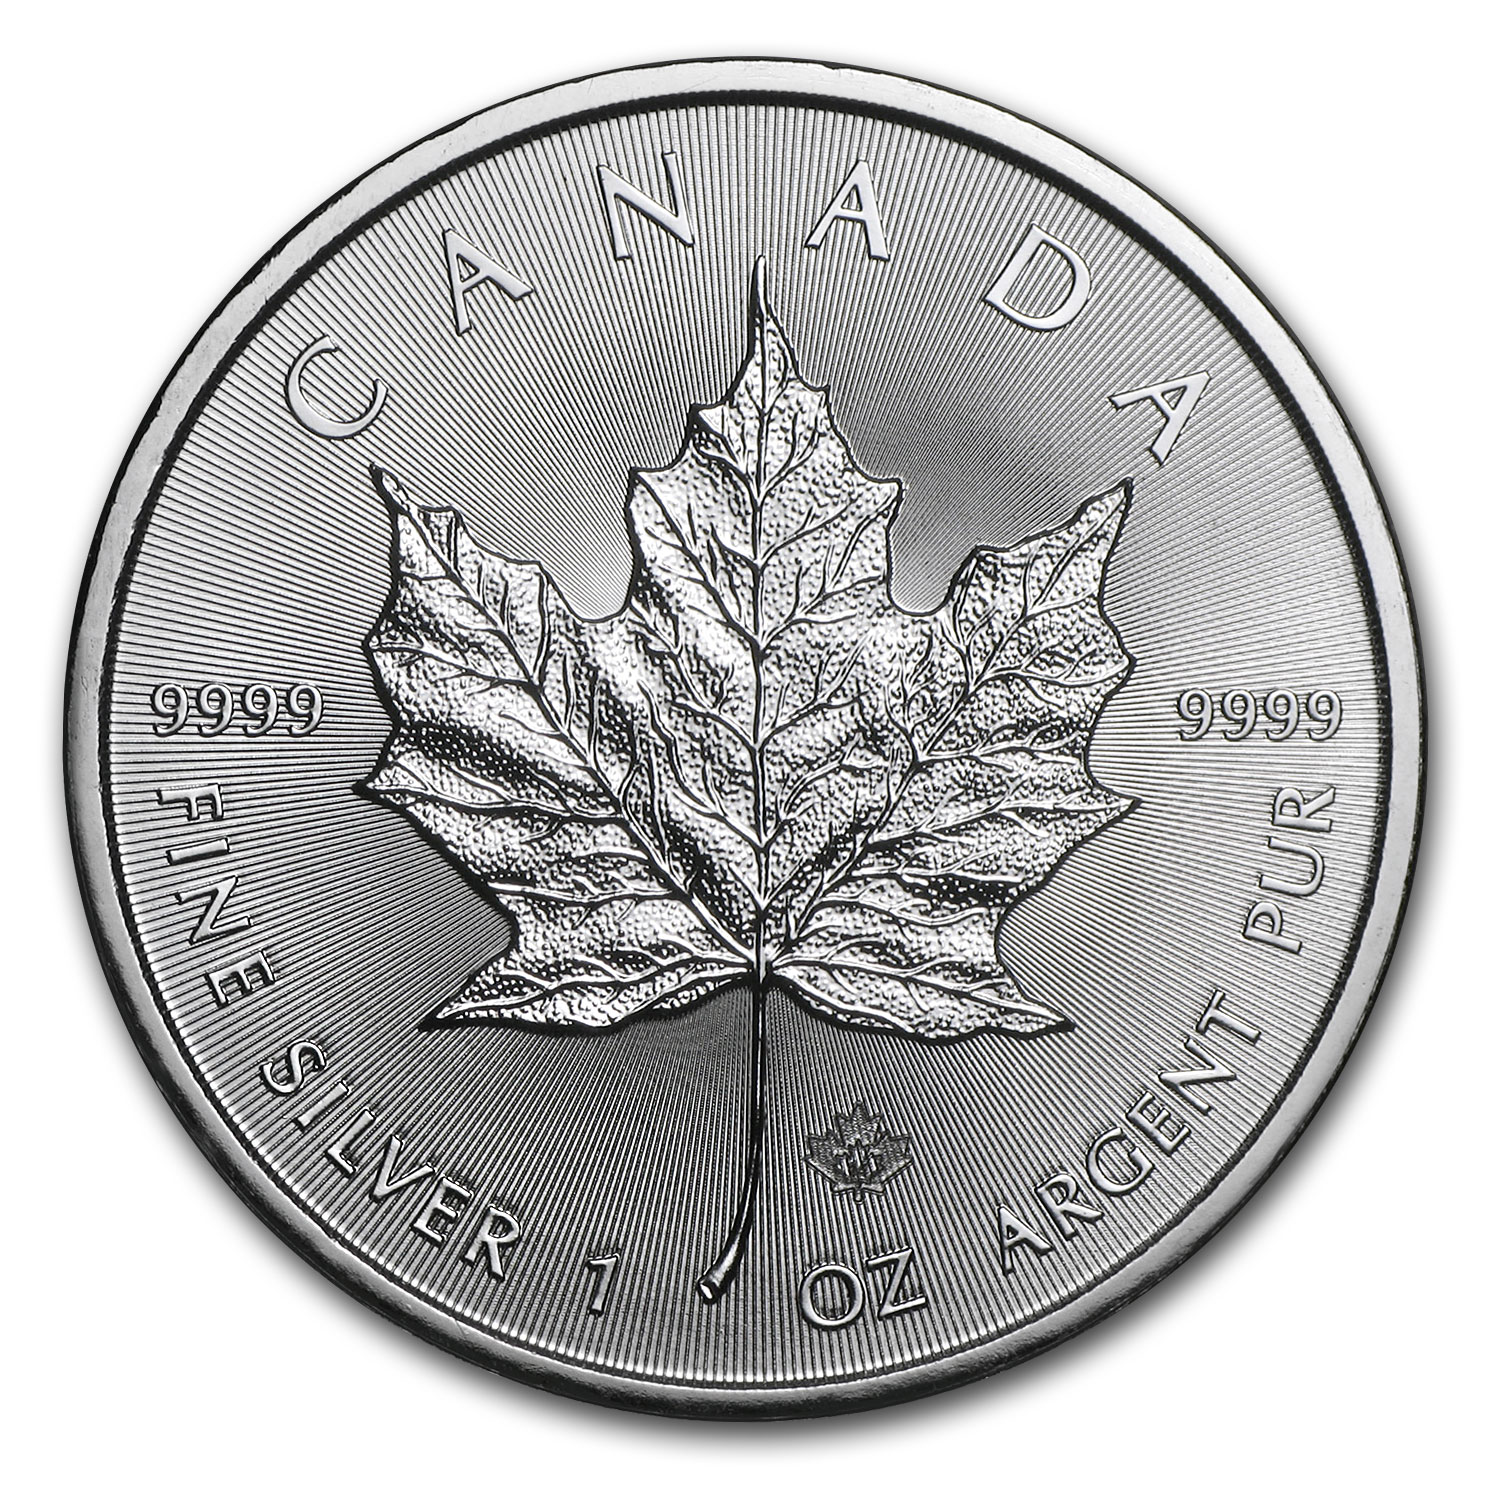 2014 1 oz Silver Canadian Maple Leaf BU